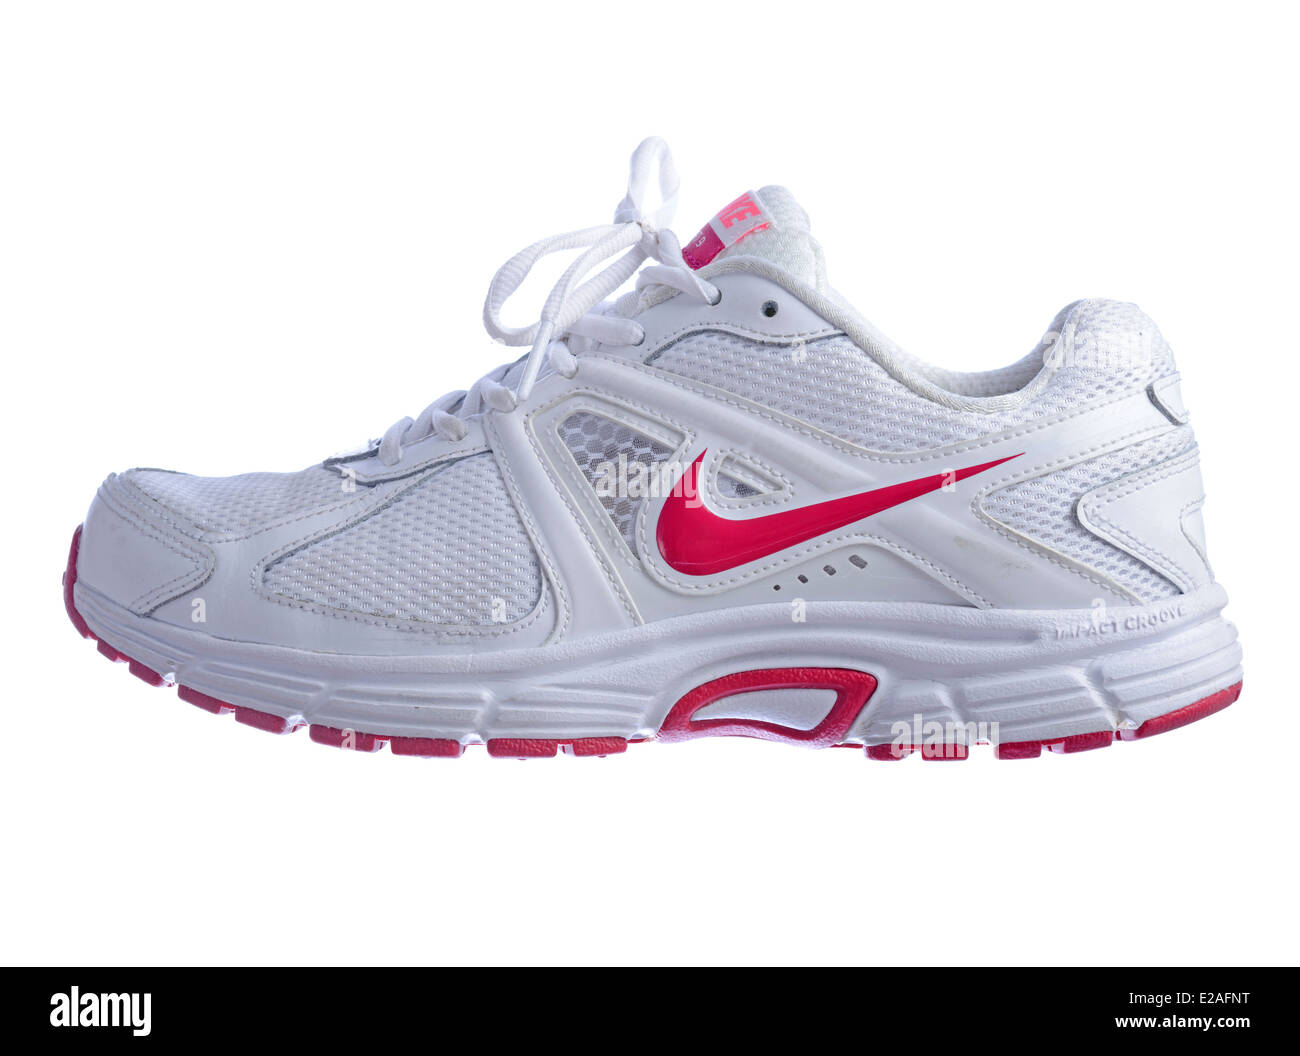 Nike Running Shoe No Background